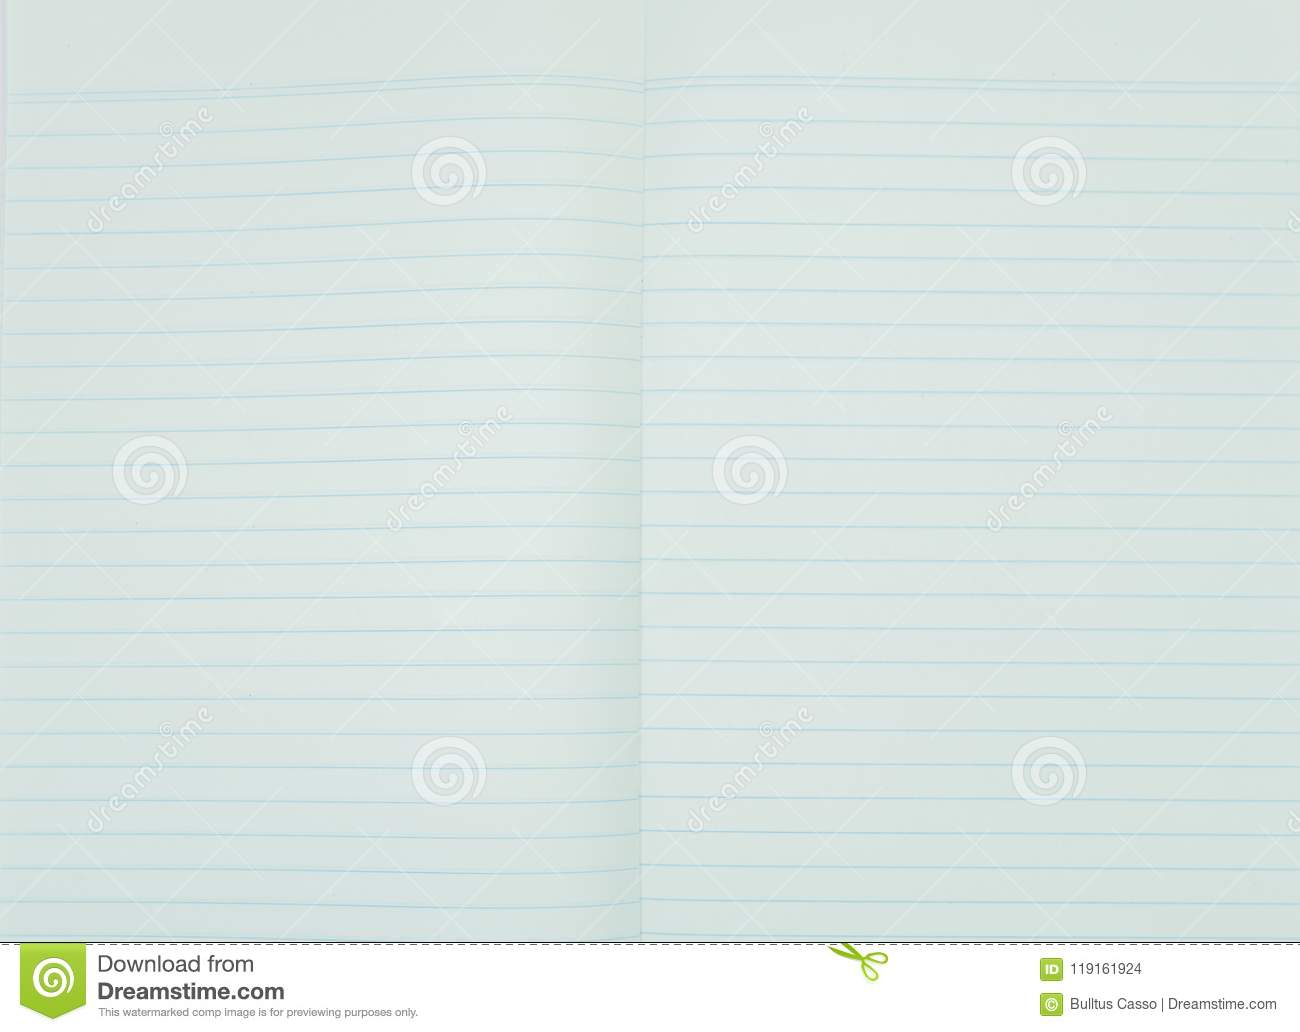 vintage grunge lined paper texture stock illustration - illustration